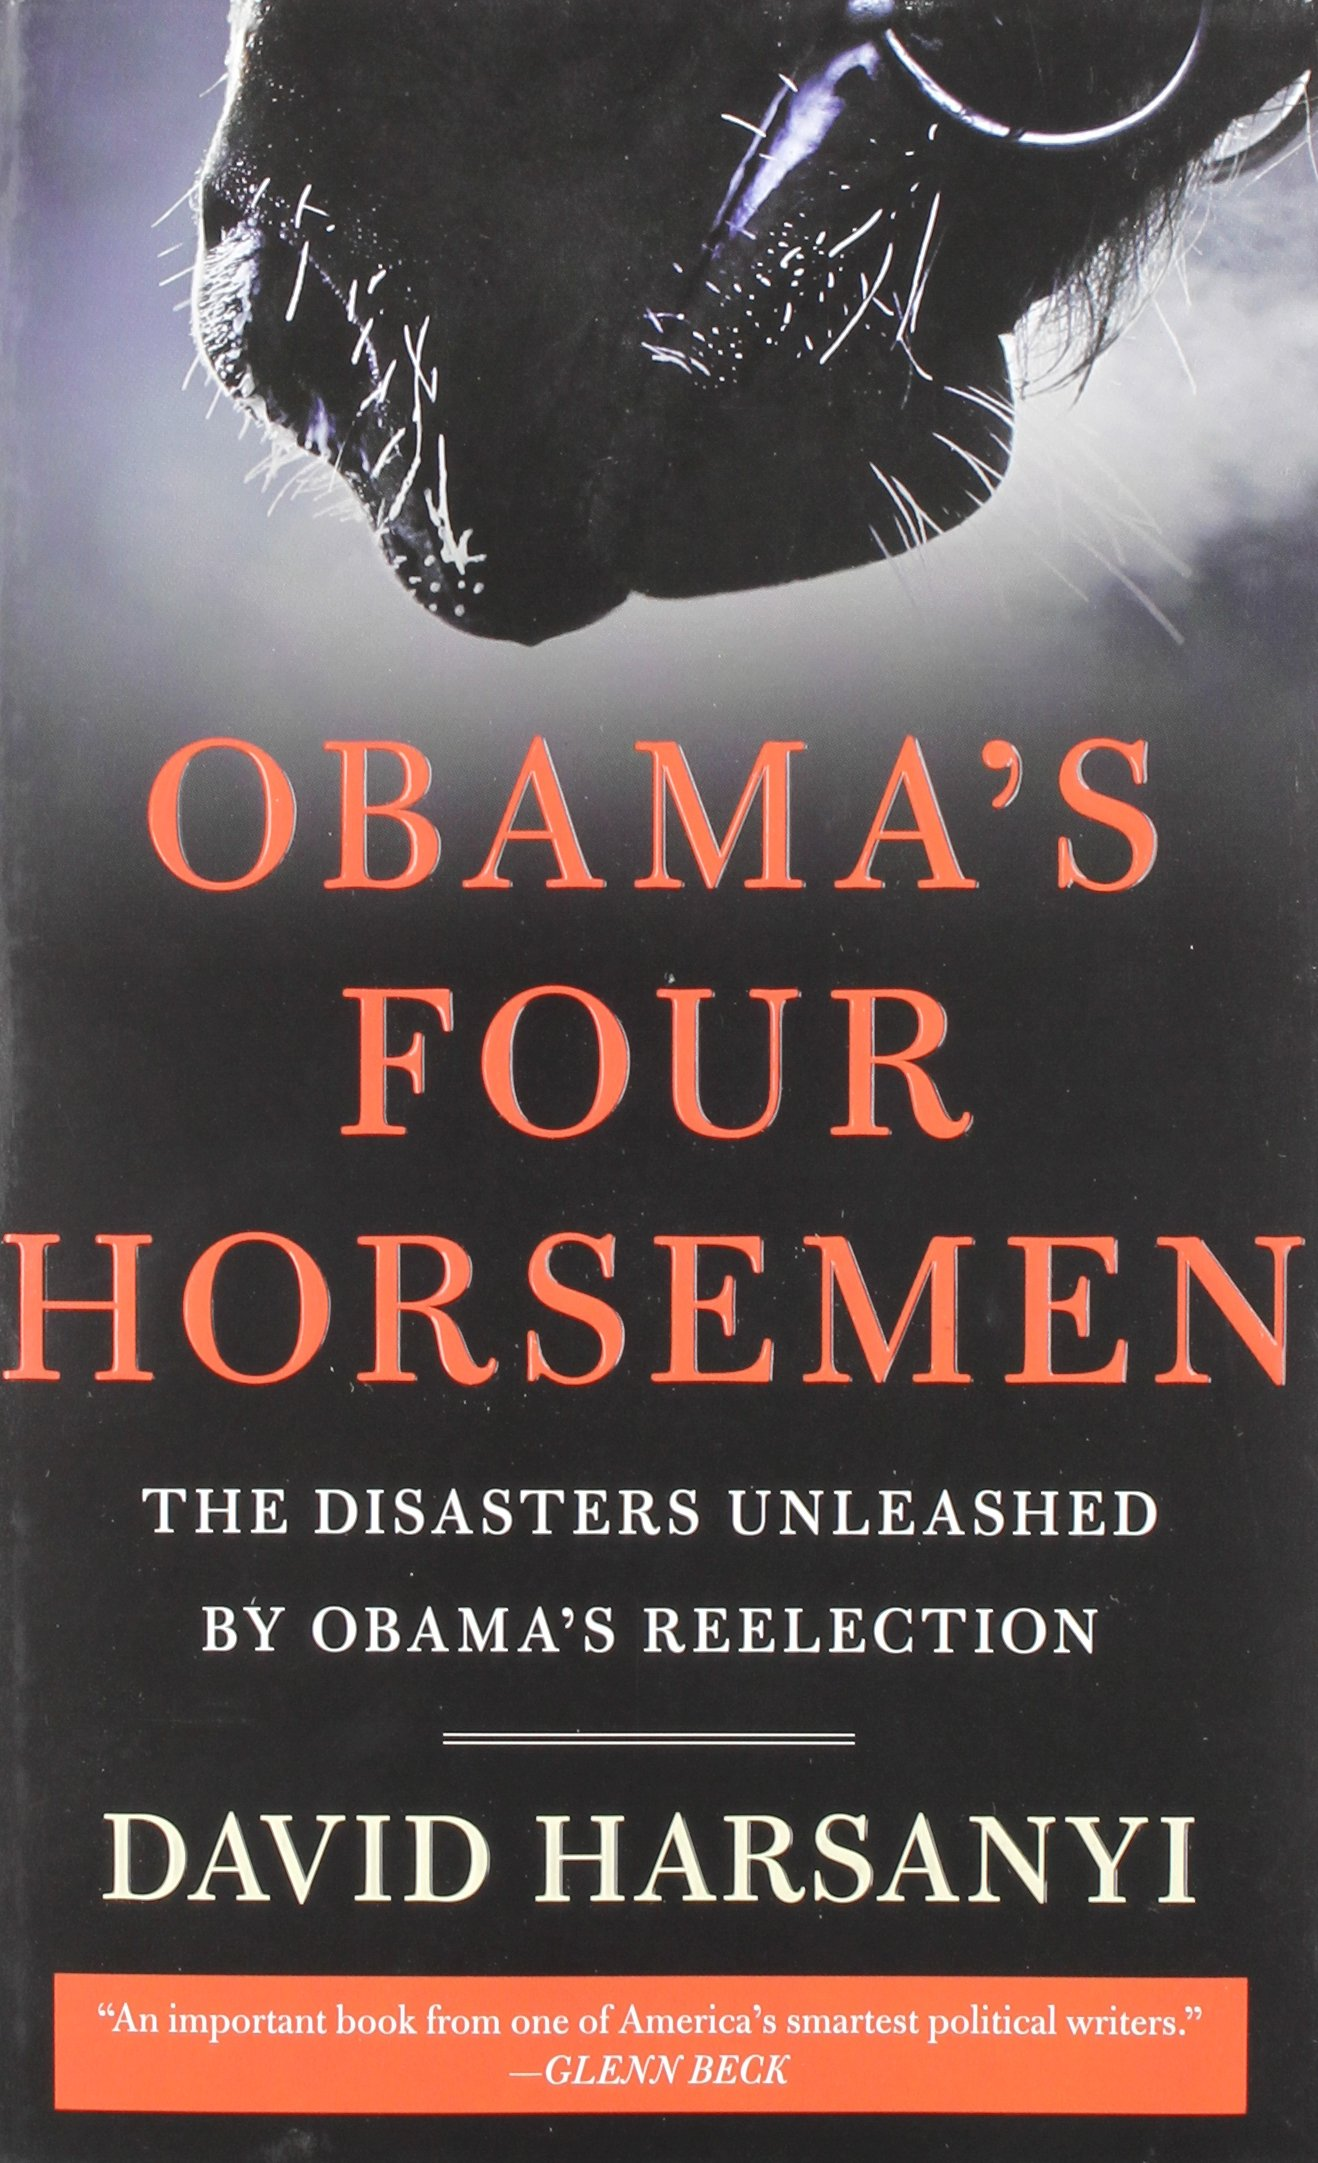 Download Obama's Four Horsemen: The Disasters Unleashed by Obama's Reelection ebook